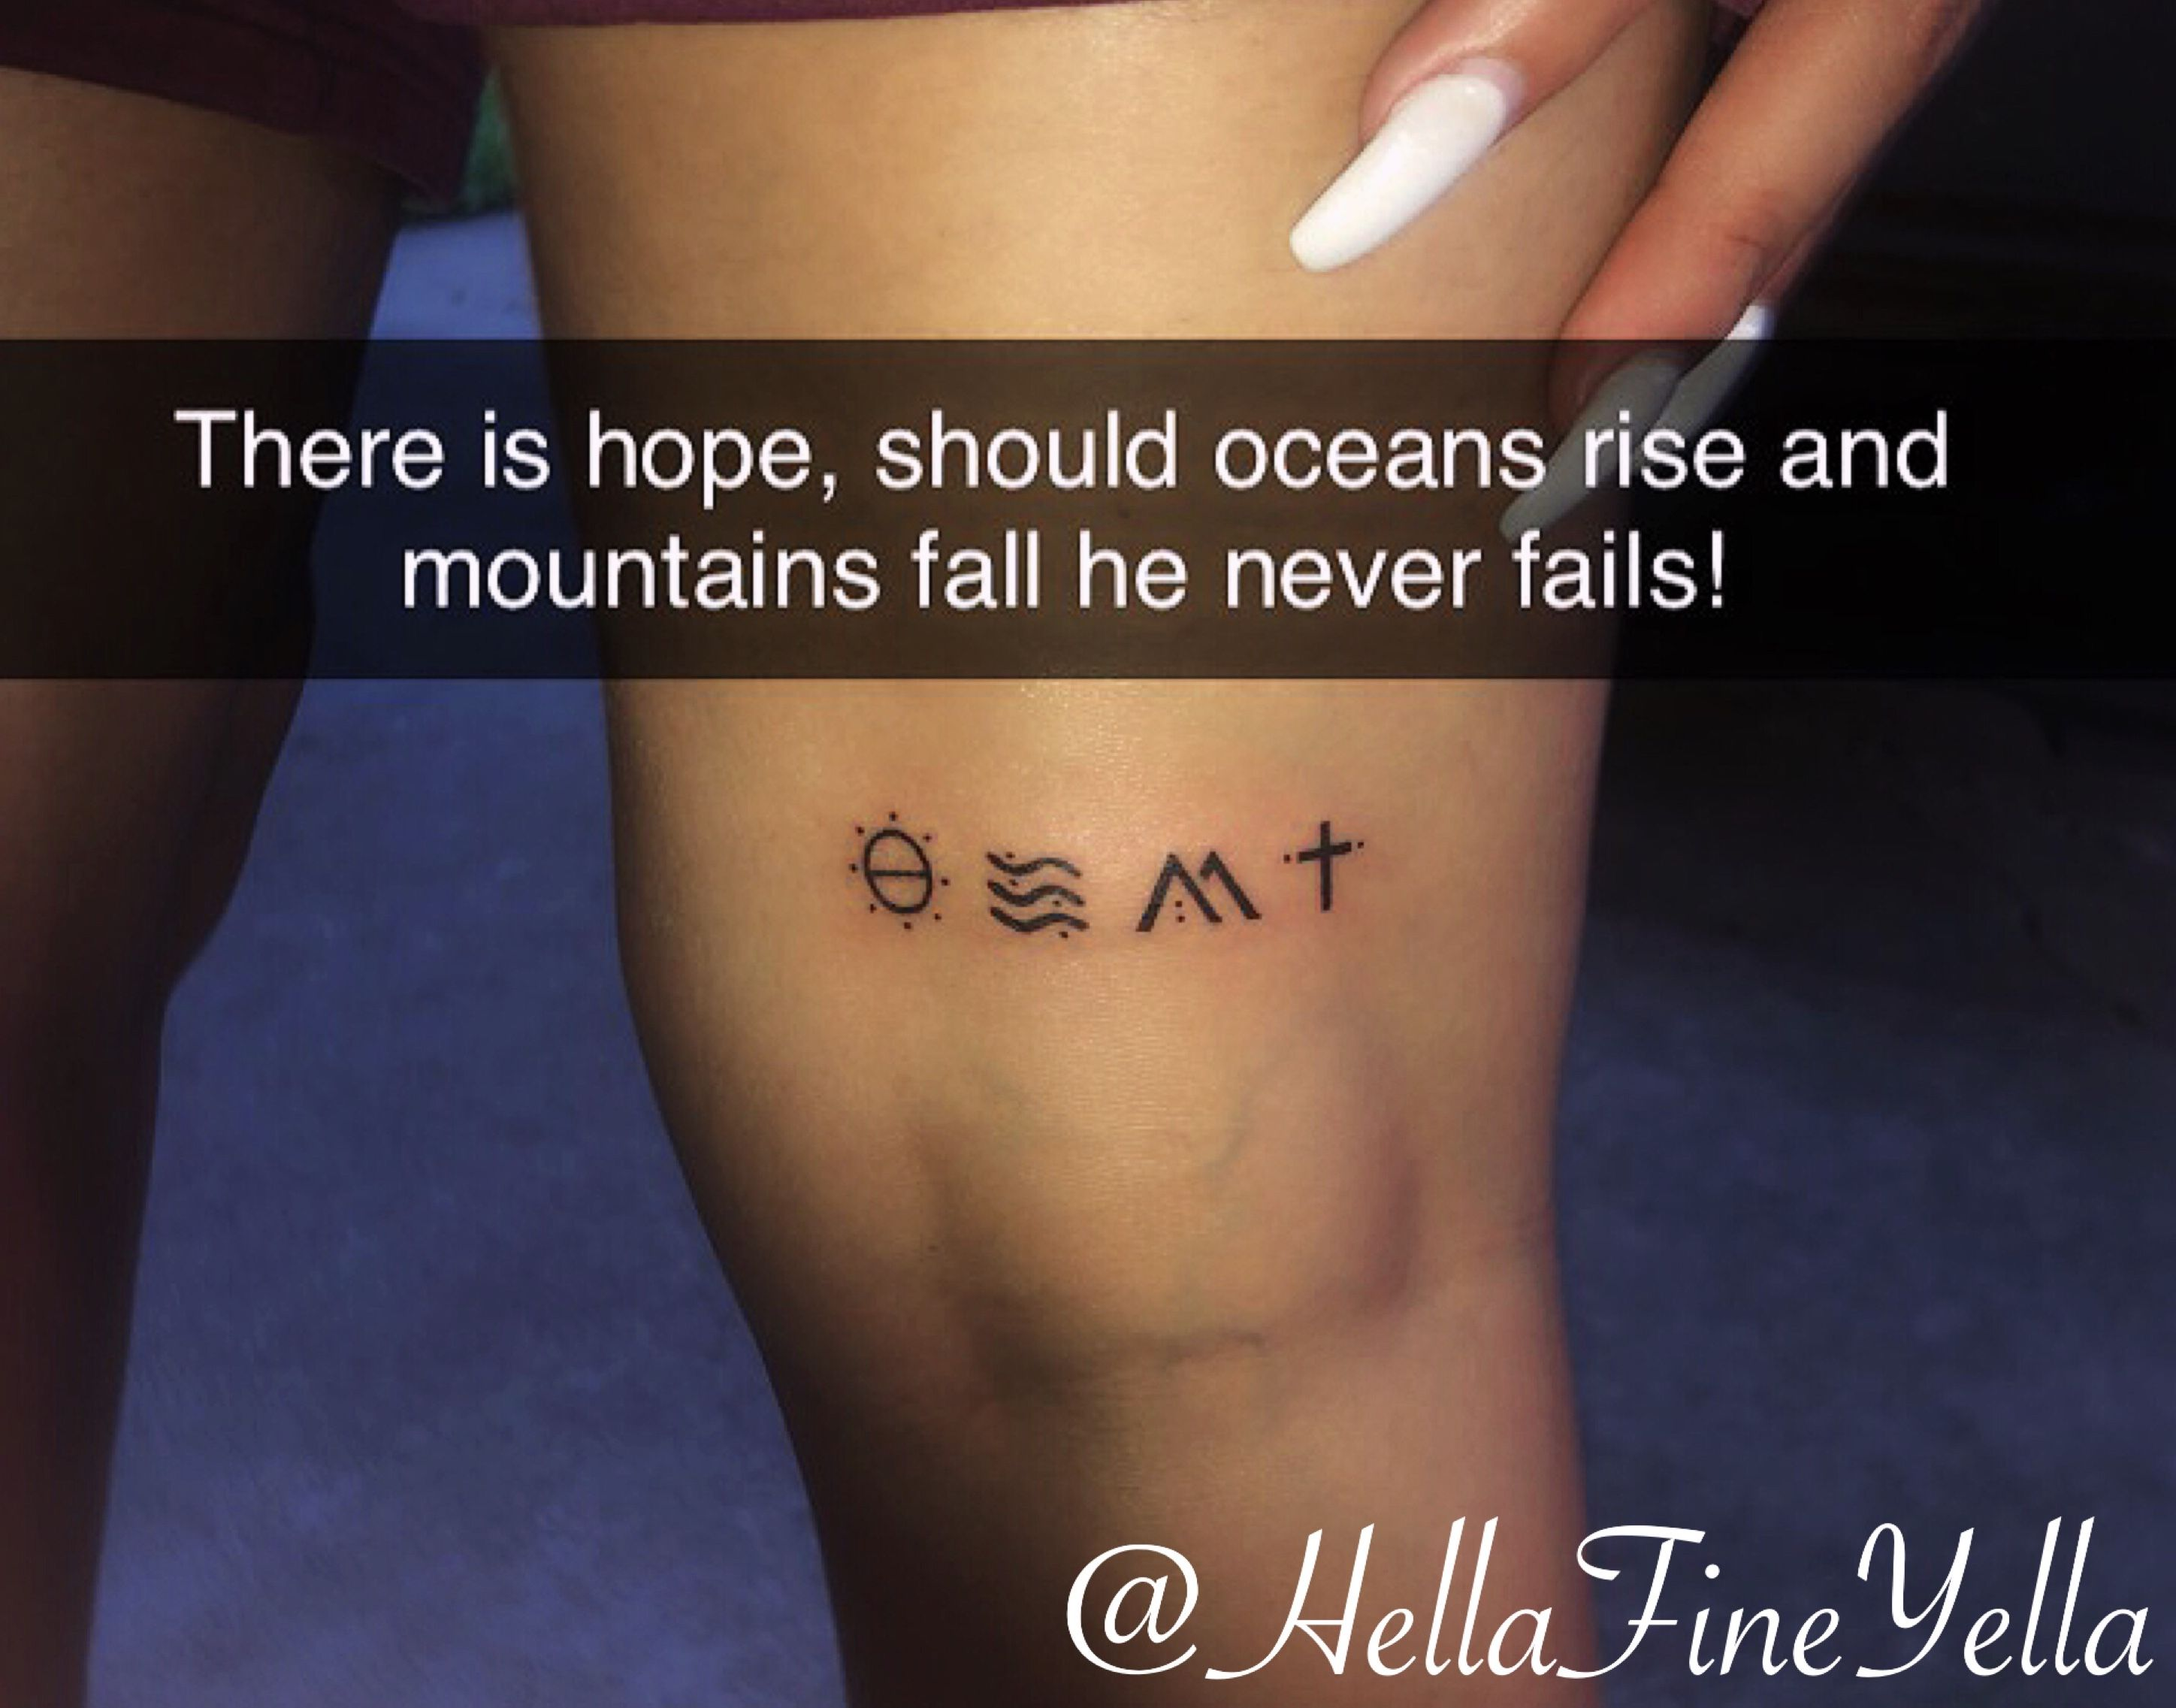 Small Tattoos   Tattoos with meaning, Small tattoos with meaning ...